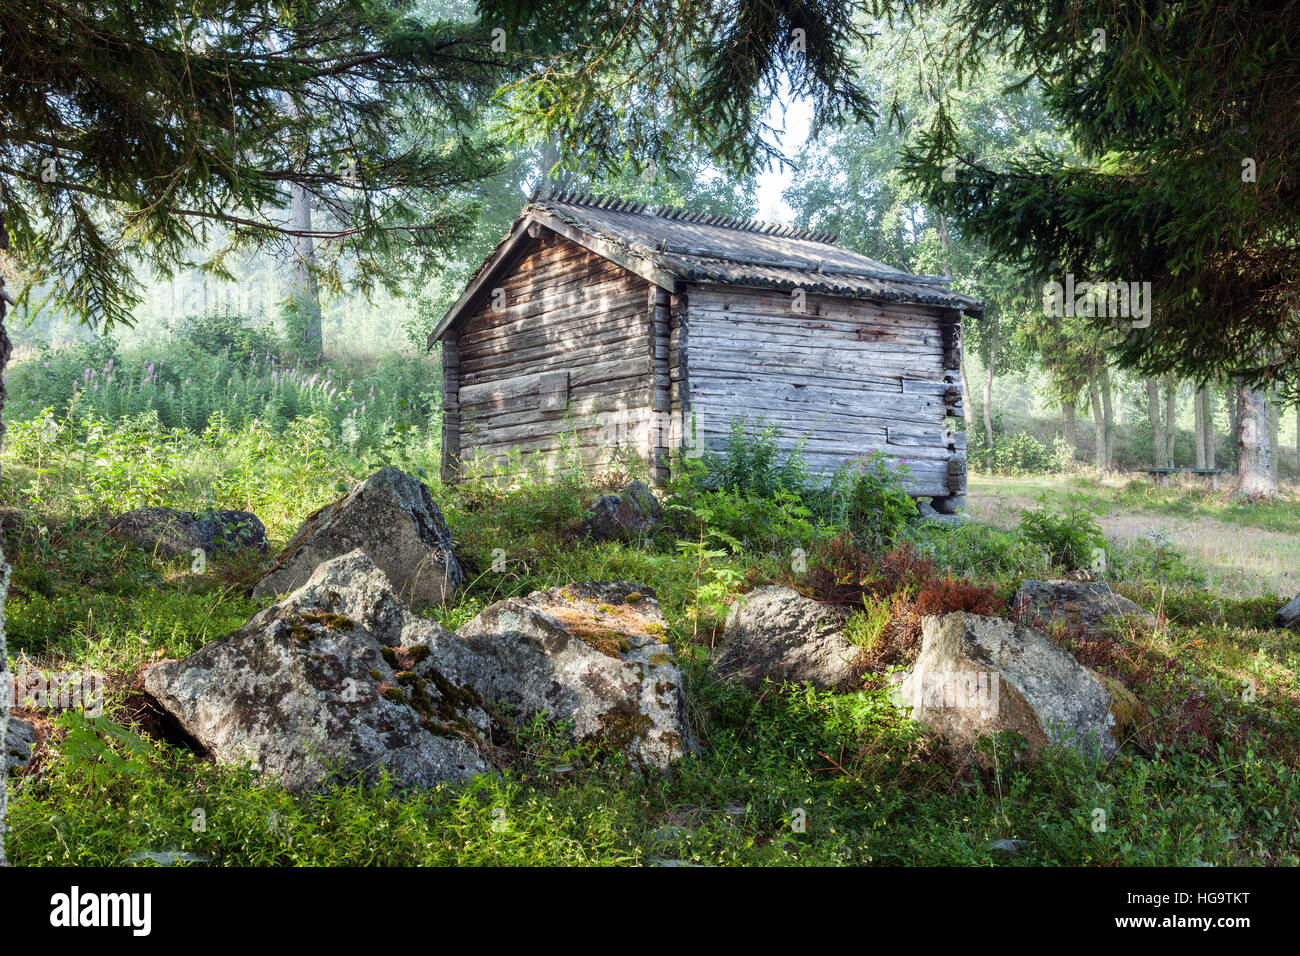 Old Wooden warehouse, barns, sheds in the forest  Stones